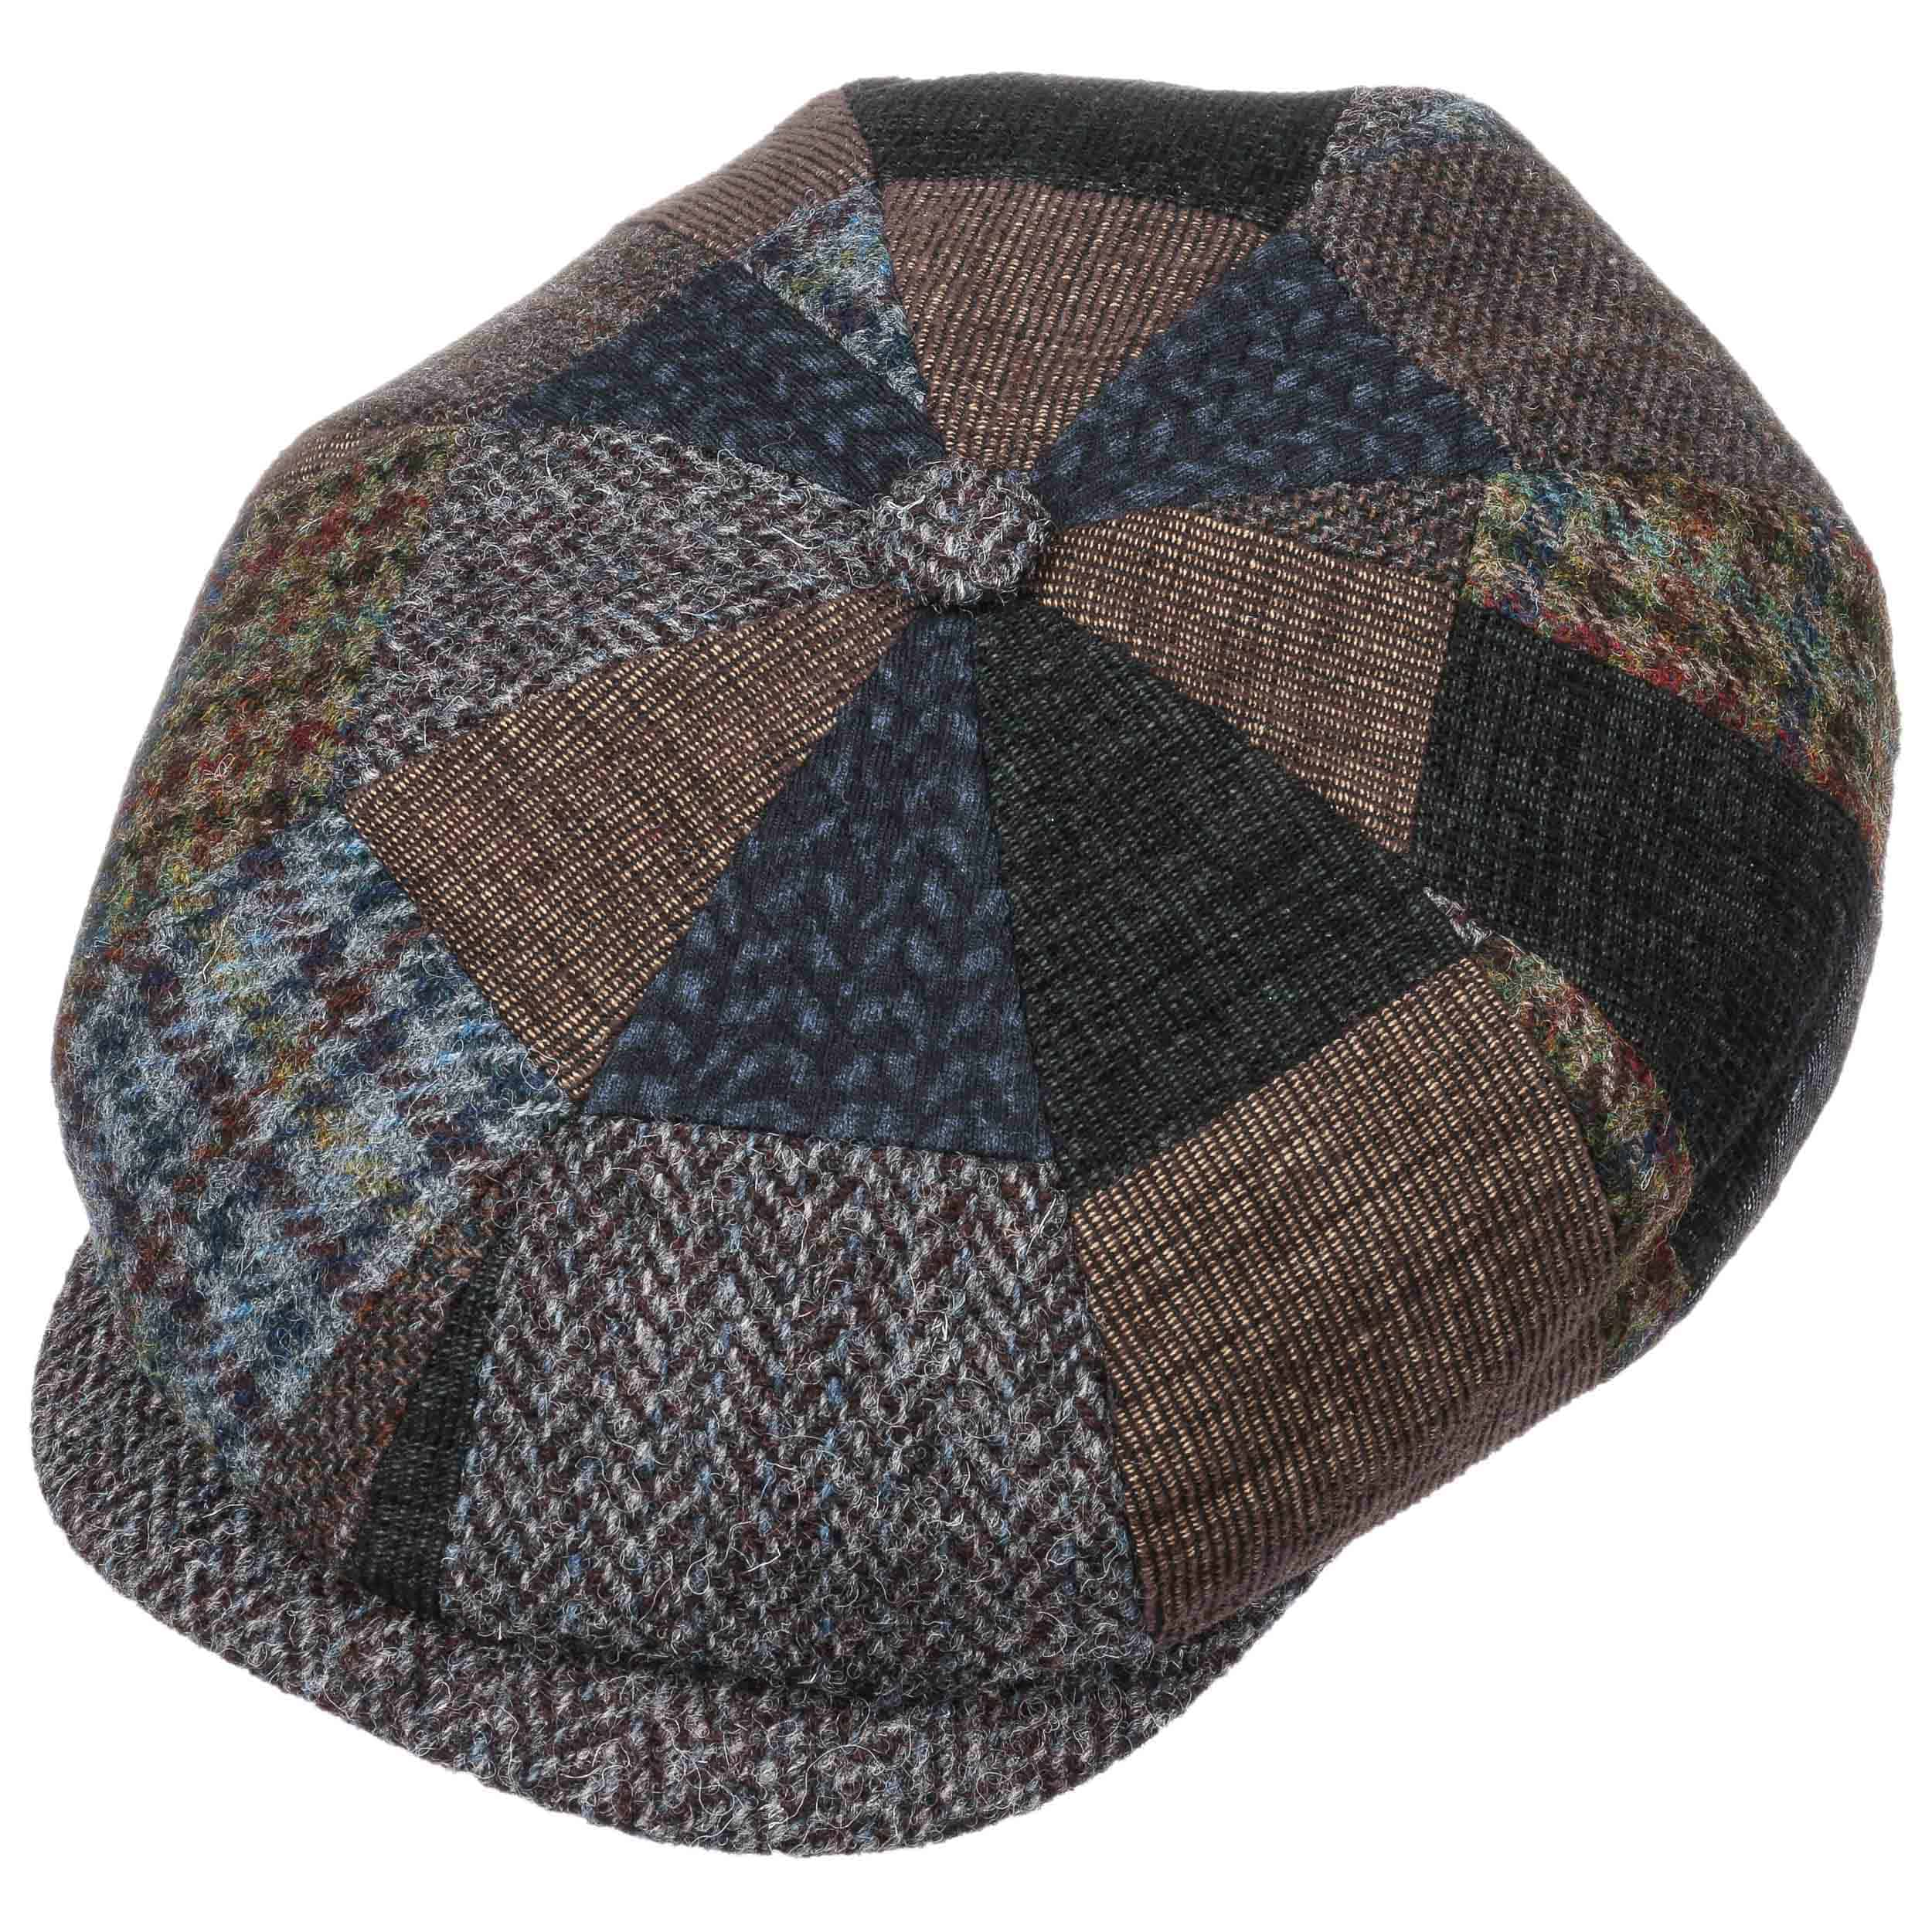 7fa379a6 Hatteras Handmade Patchwork Flat Cap by Stetson - brown 1 ...